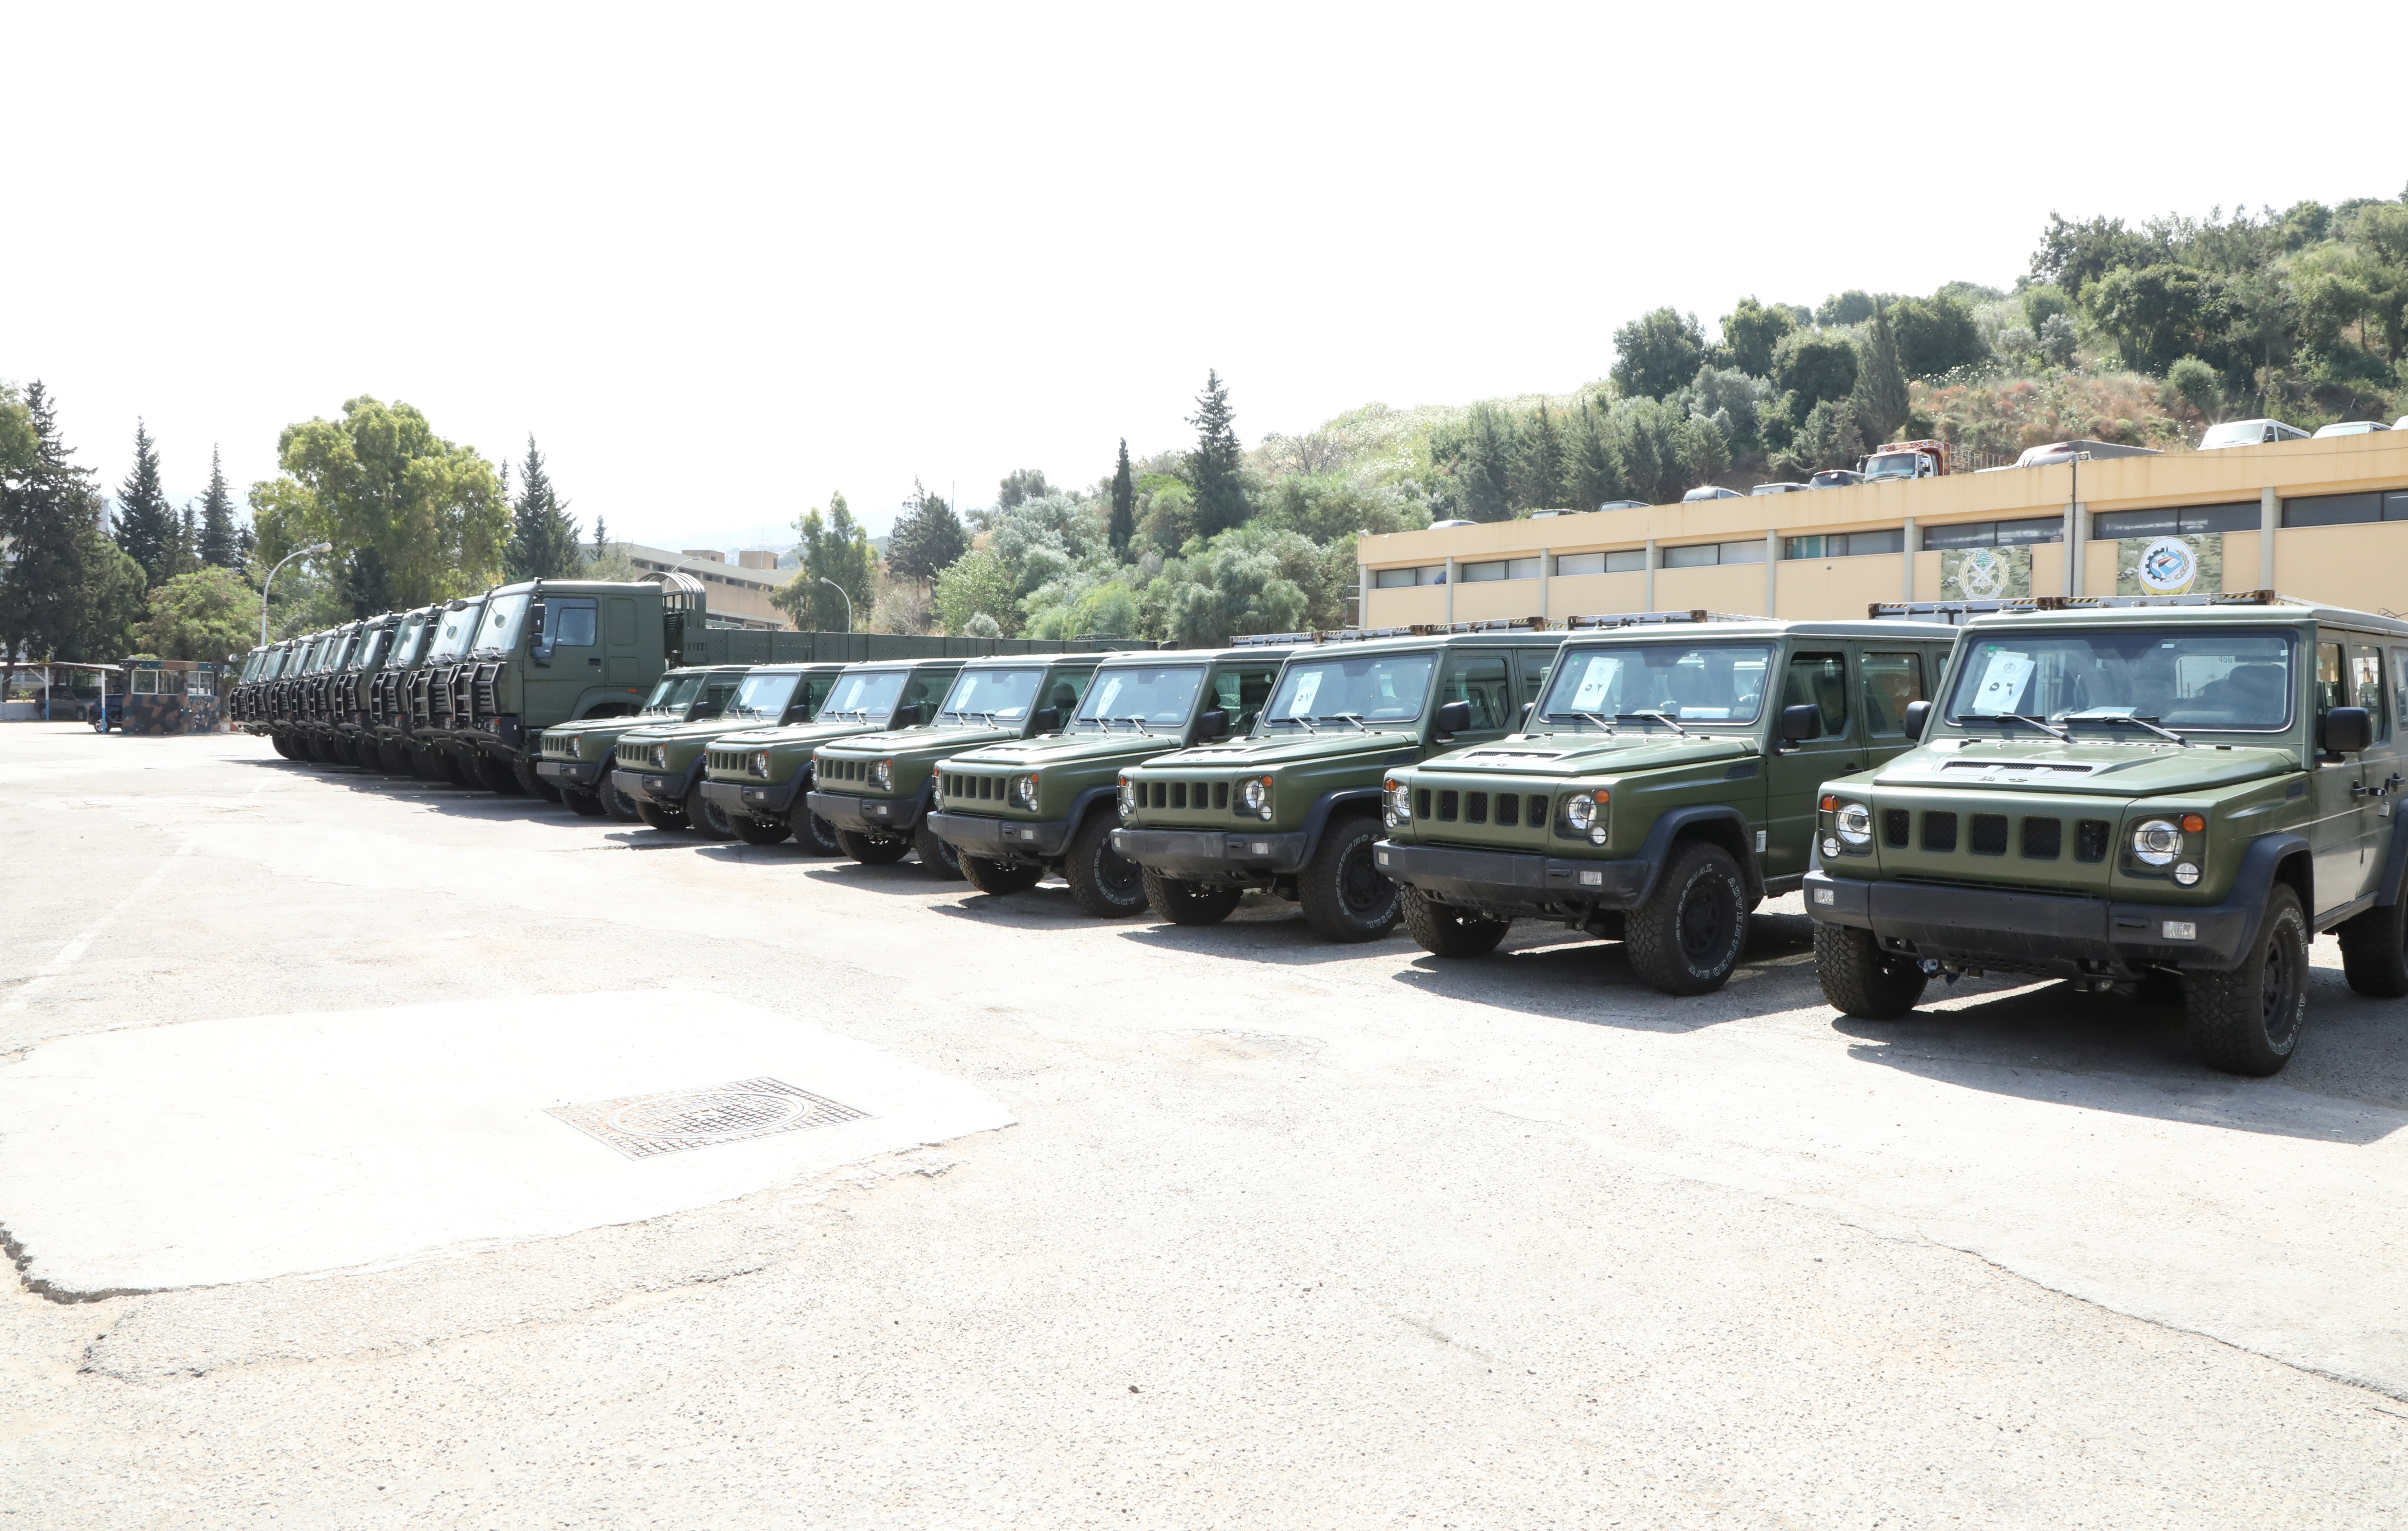 China delivered 100 vehicles to Lebanon in June 2021 as part of military aid. (Lebanese Army)